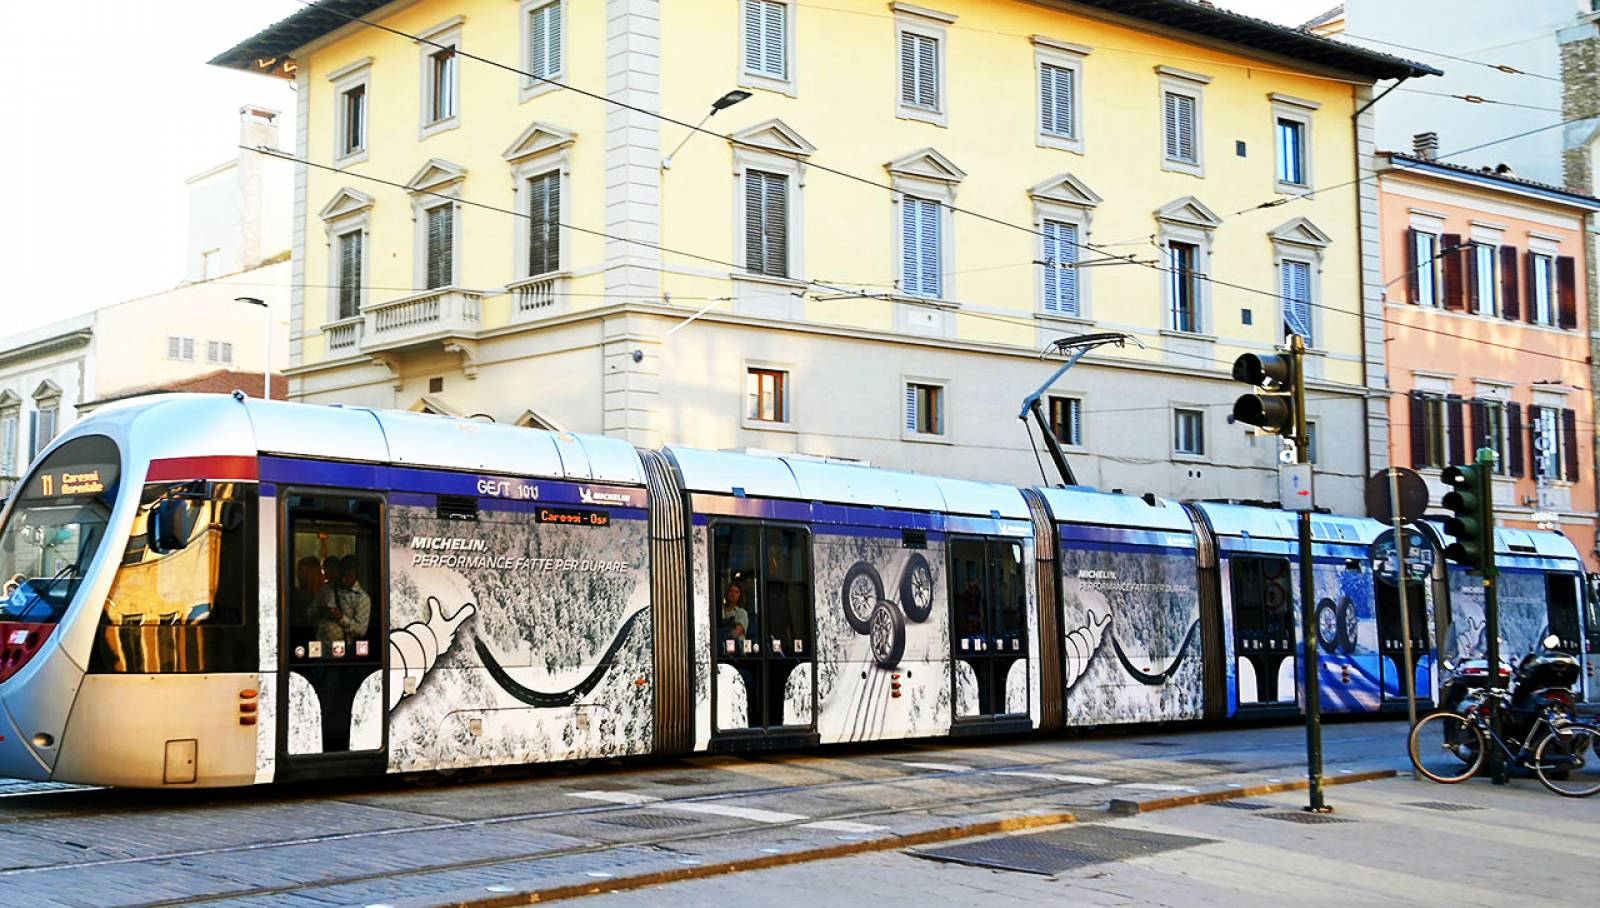 Advertising on tram in Florence IGPDecaux Full-Wrap for Michelin